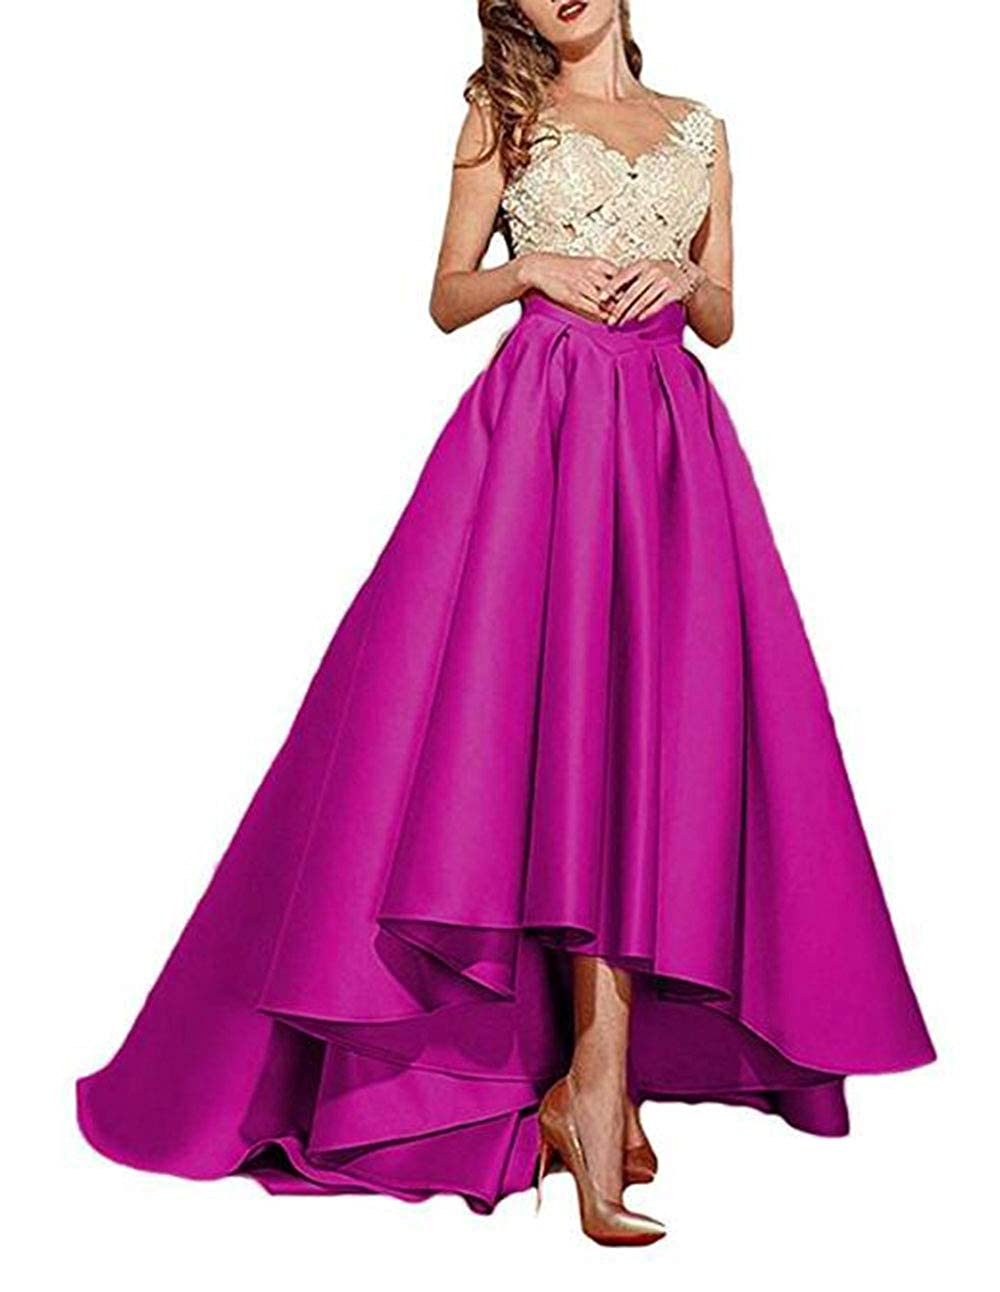 Fuchsia alilith.Z Sexy Lace Appliques Prom Dresses High Low Formal Evening Dresses Party Gowns for Women